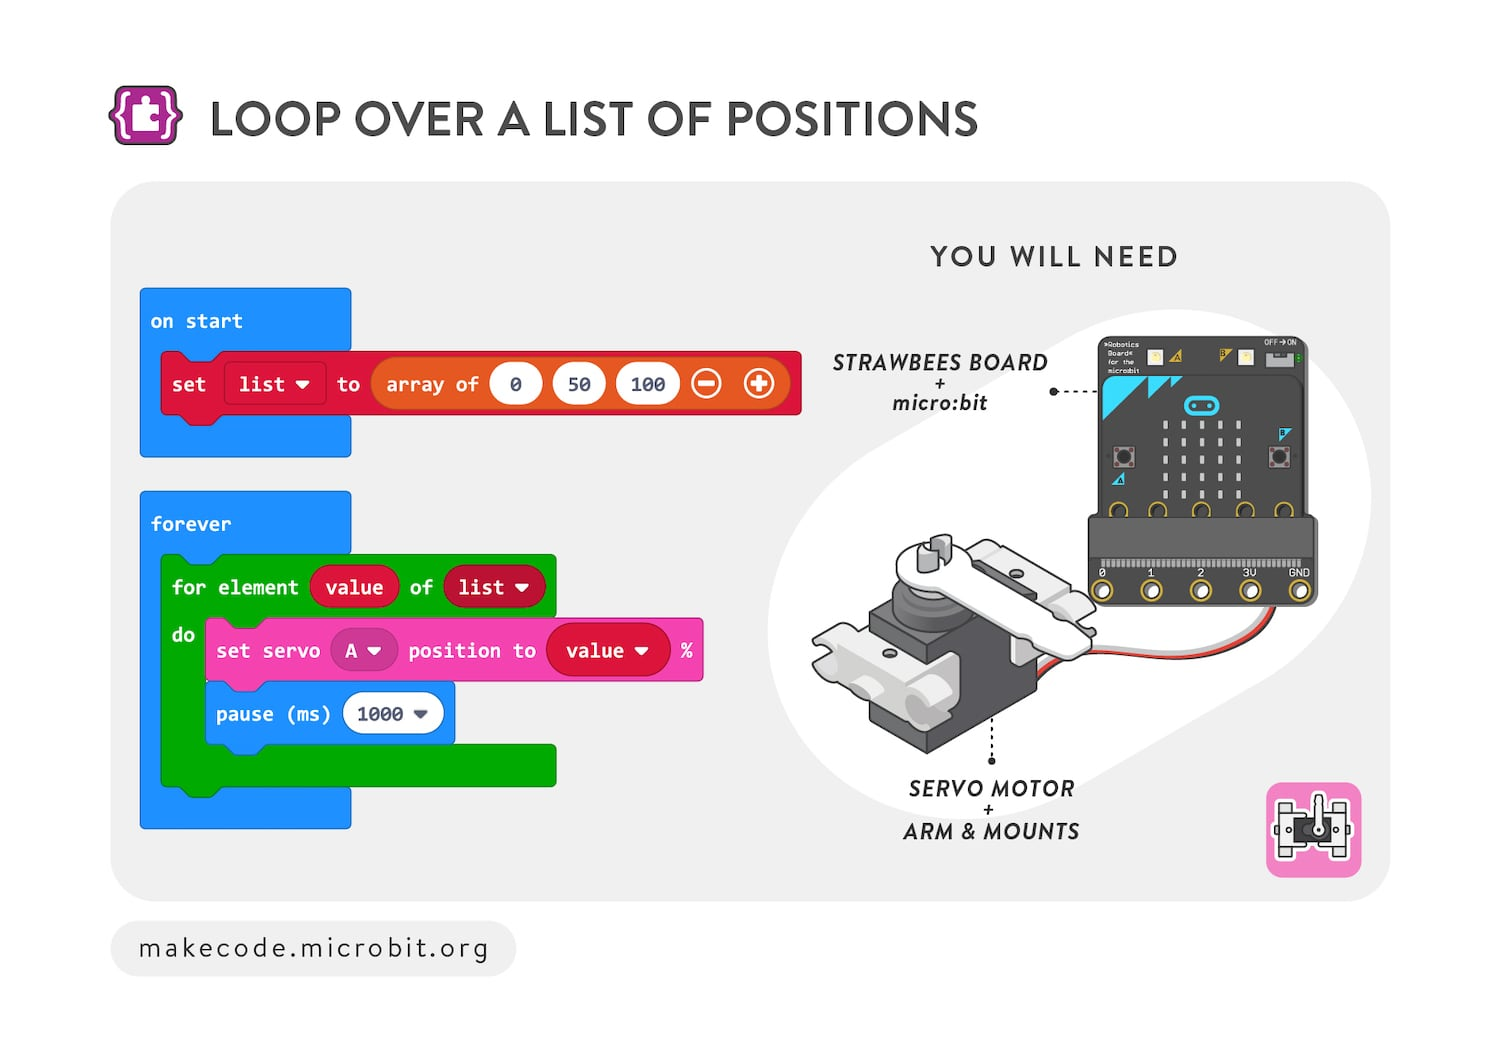 Loop over a list of positions